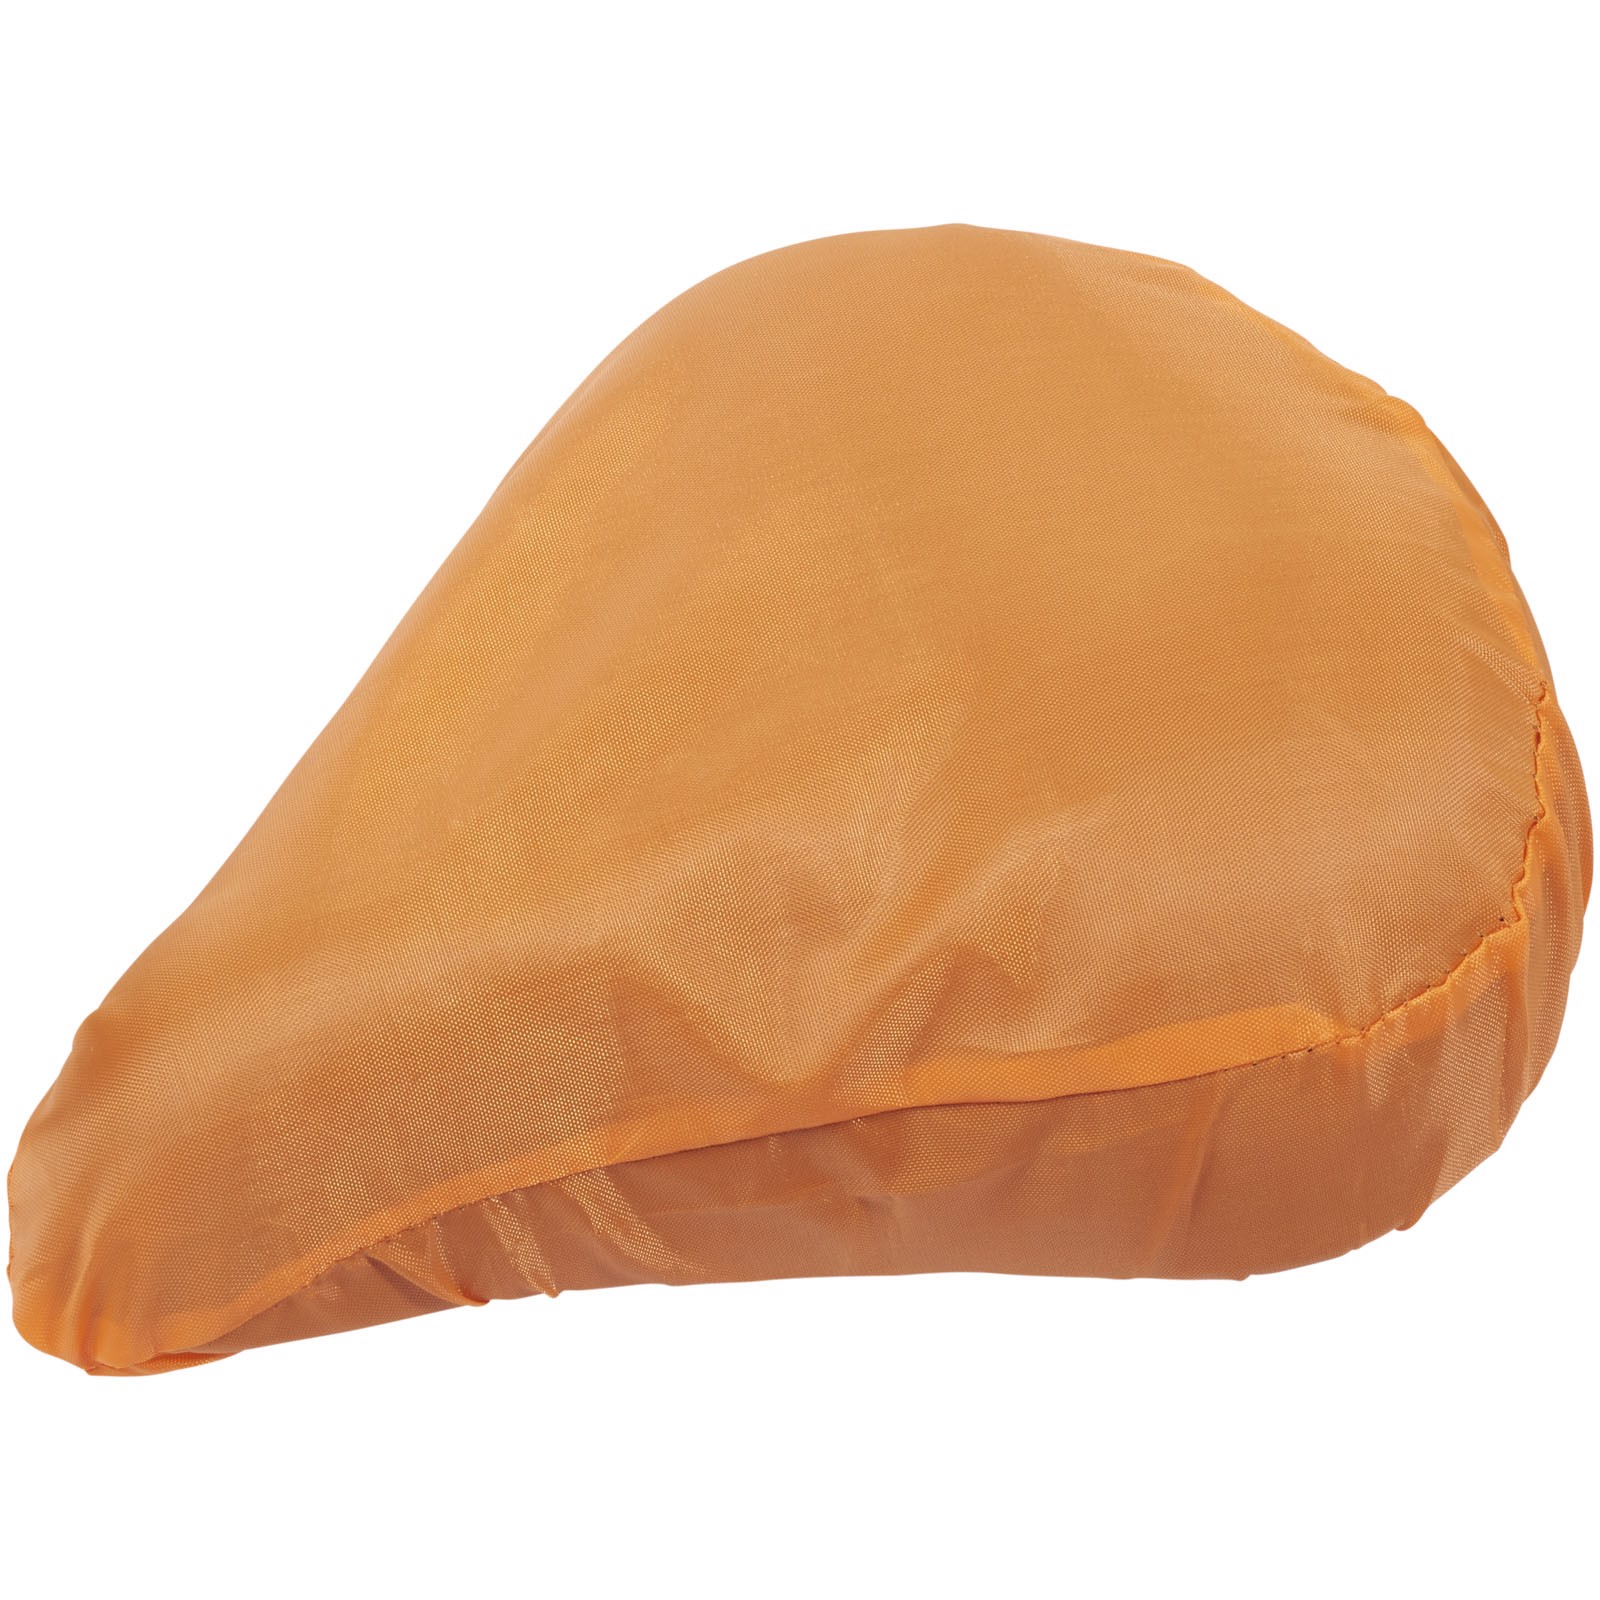 Mills bike seat cover - Orange